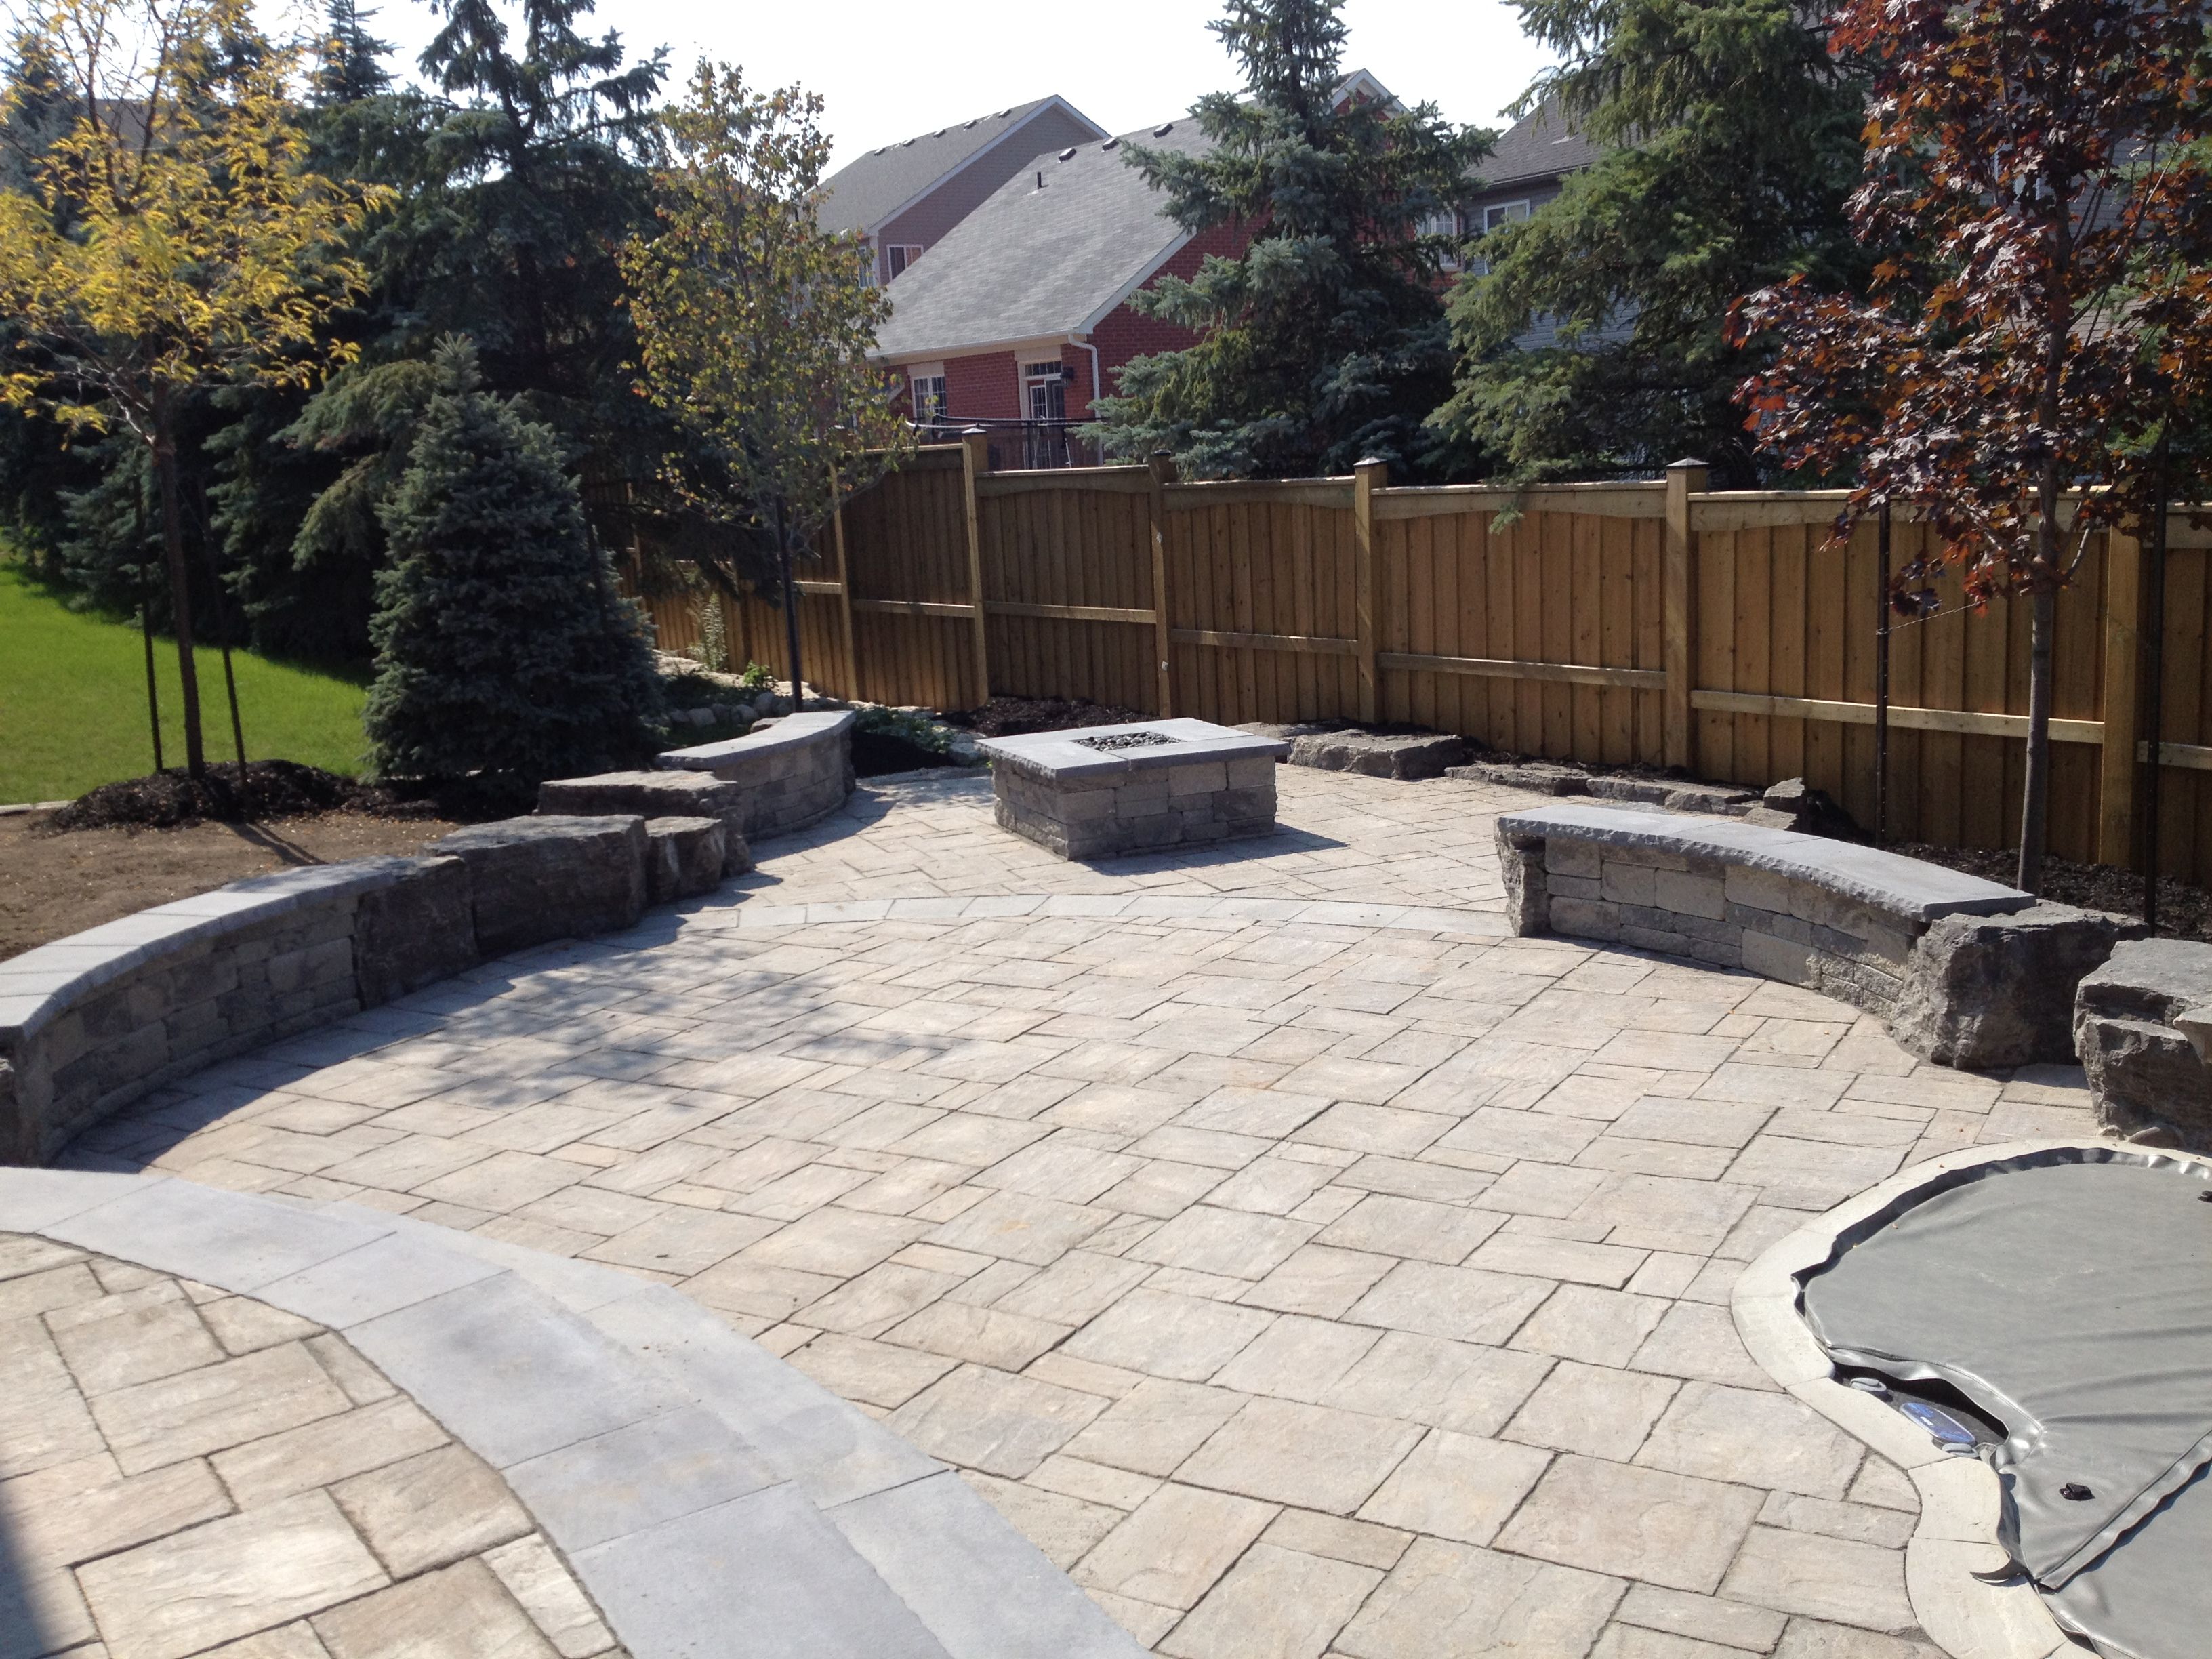 Patio/Seating